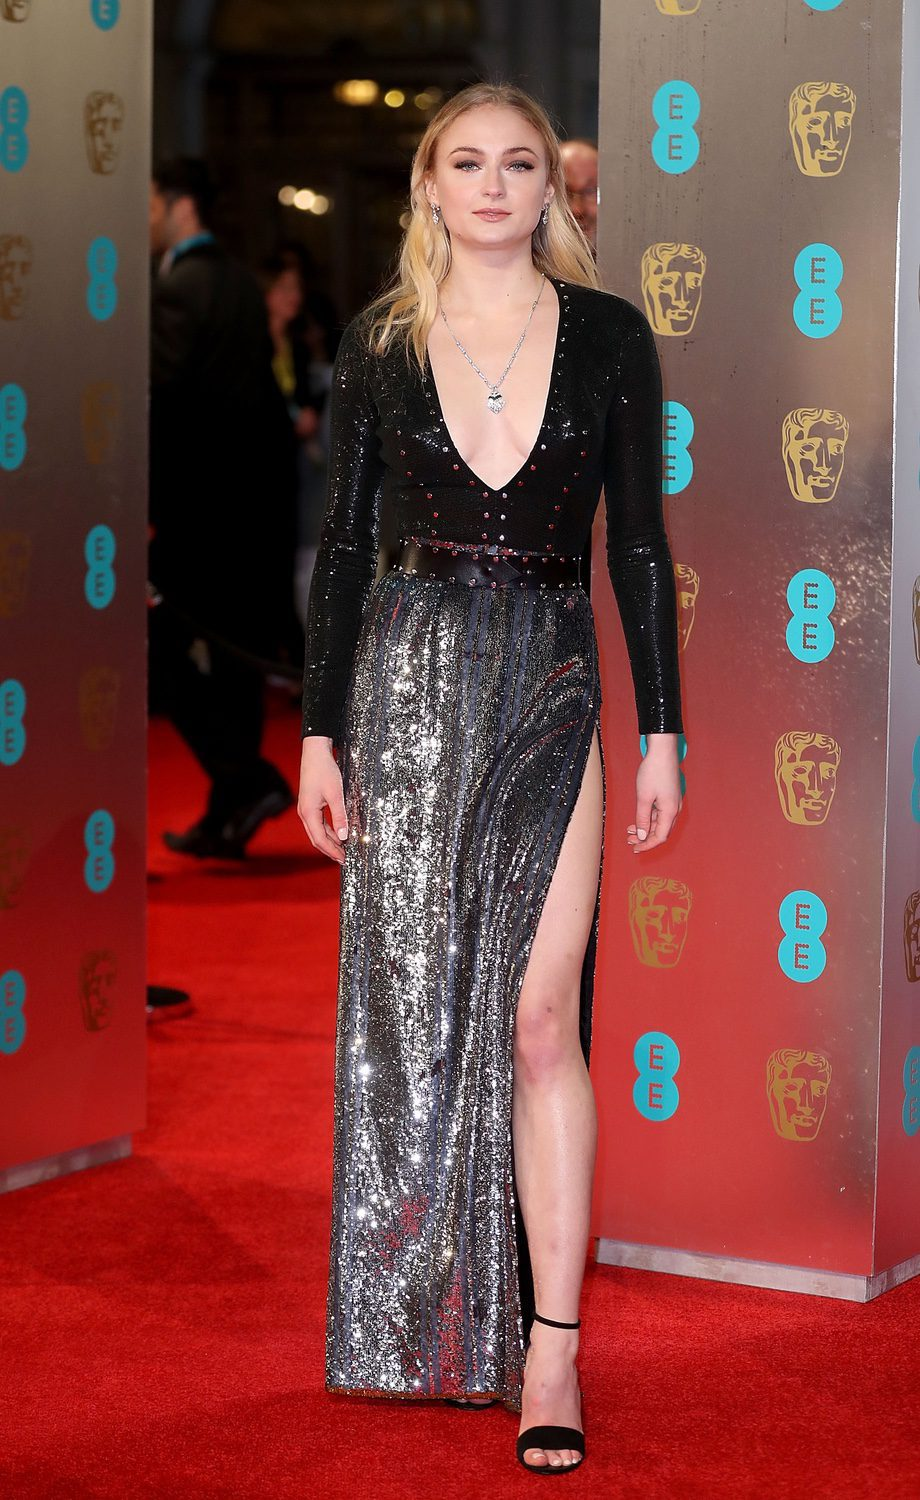 Sophie Turner At The Red Carpet Bafta 2017 Photos At